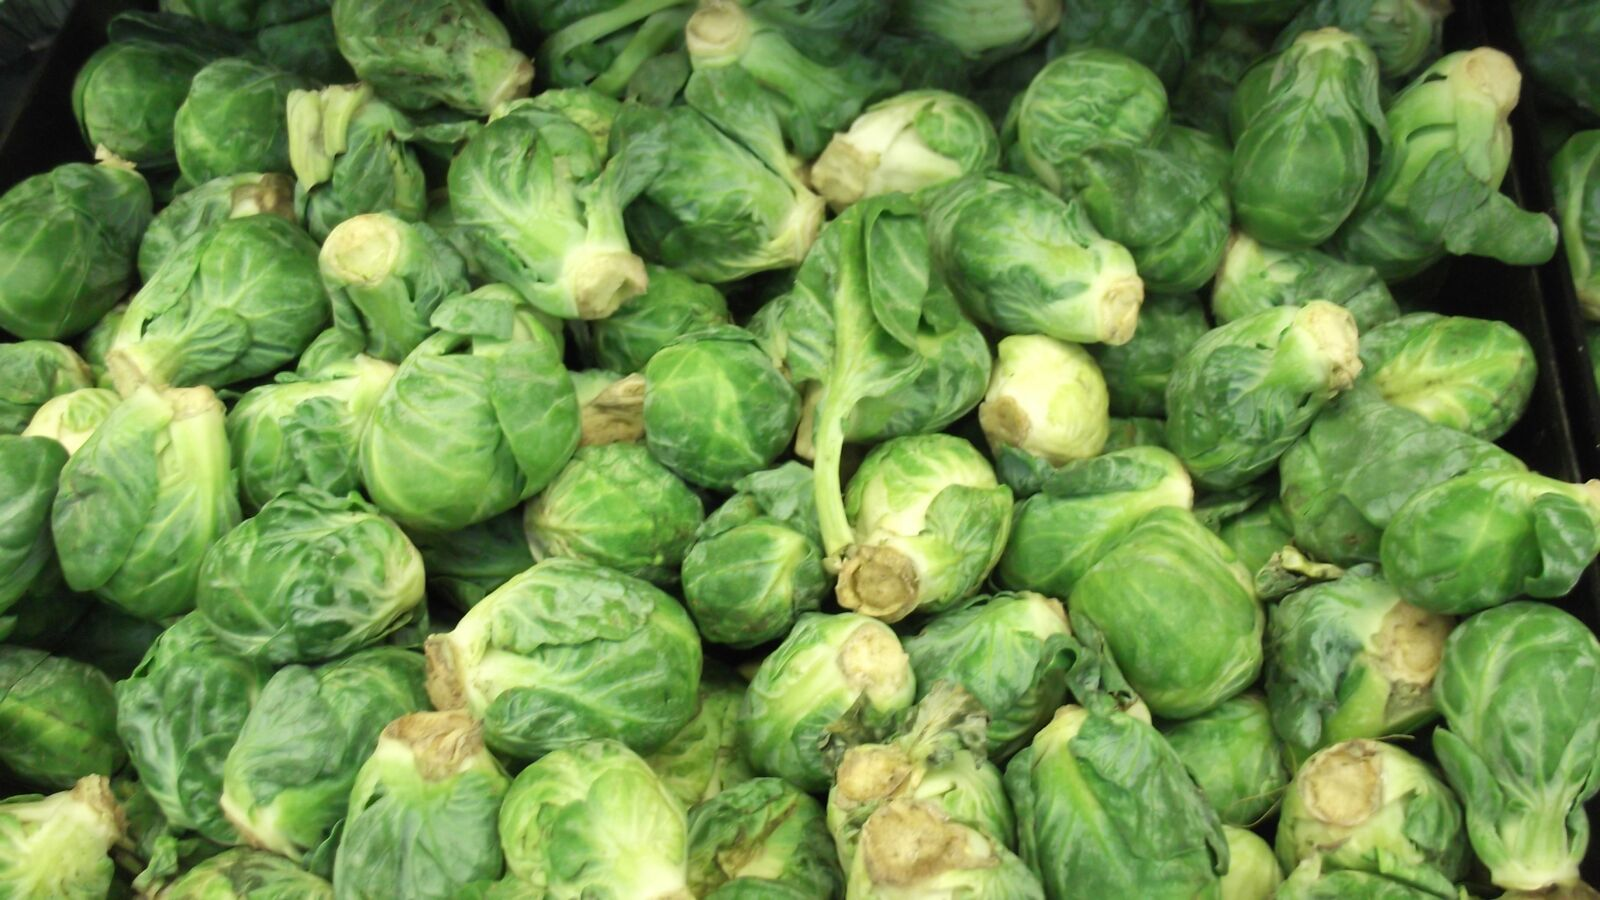 """Fujifilm FinePix L30 sample photo. """"Brussels sprout, vegetable, food"""" photography"""